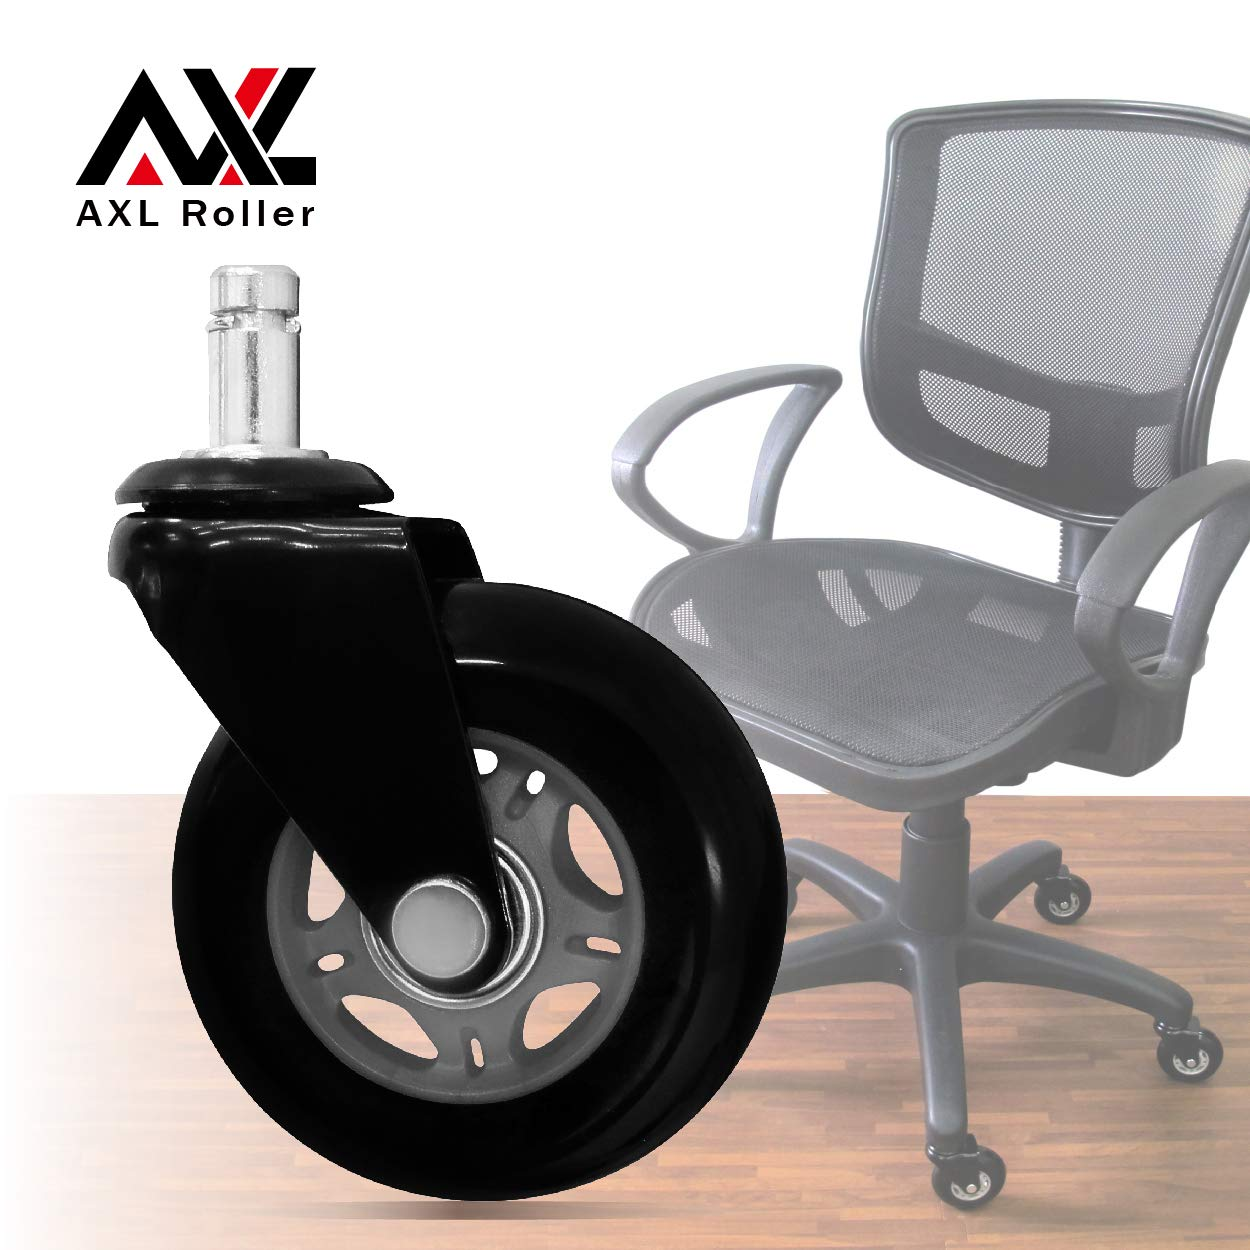 AXL 3 inch Office Chair Caster Wheels Replacement PU Style Caster, Desk Chair Floor Protector, No Noise, Safe for All Hardwood Floors (Grey/Black)